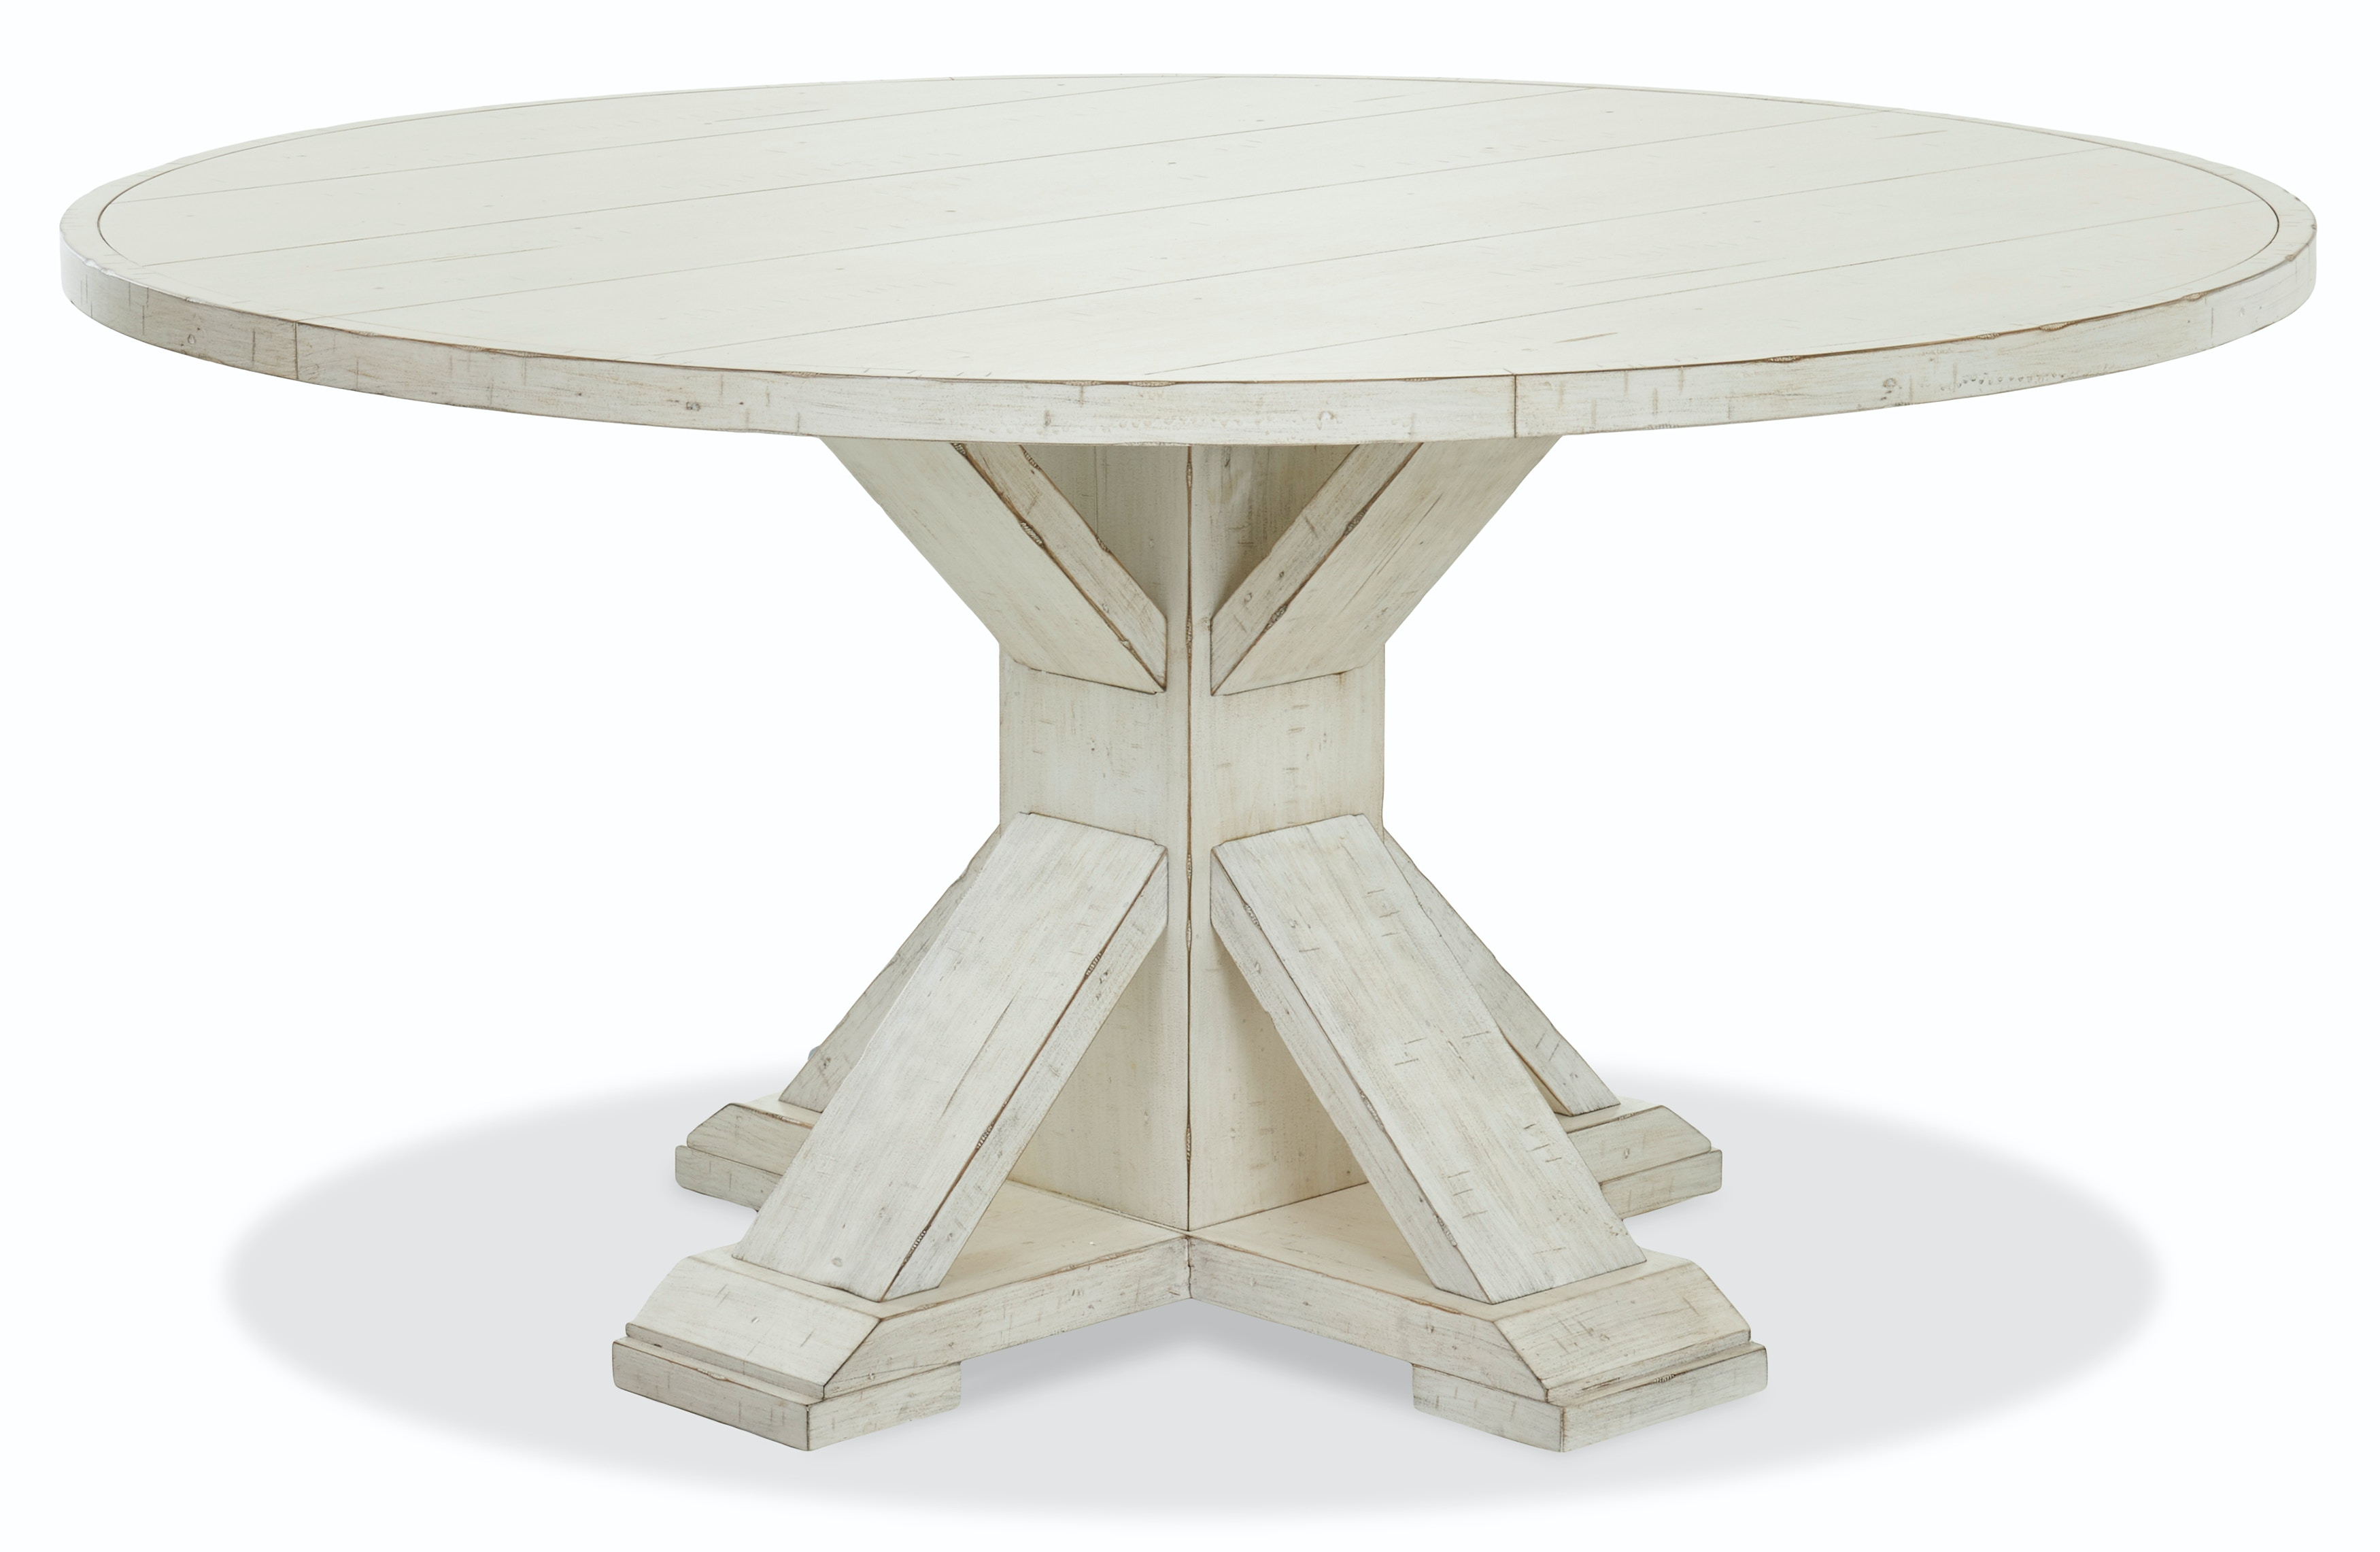 Lovely Trisha Yearwood Coming Home   Get Together Round Dining Table KT:80853